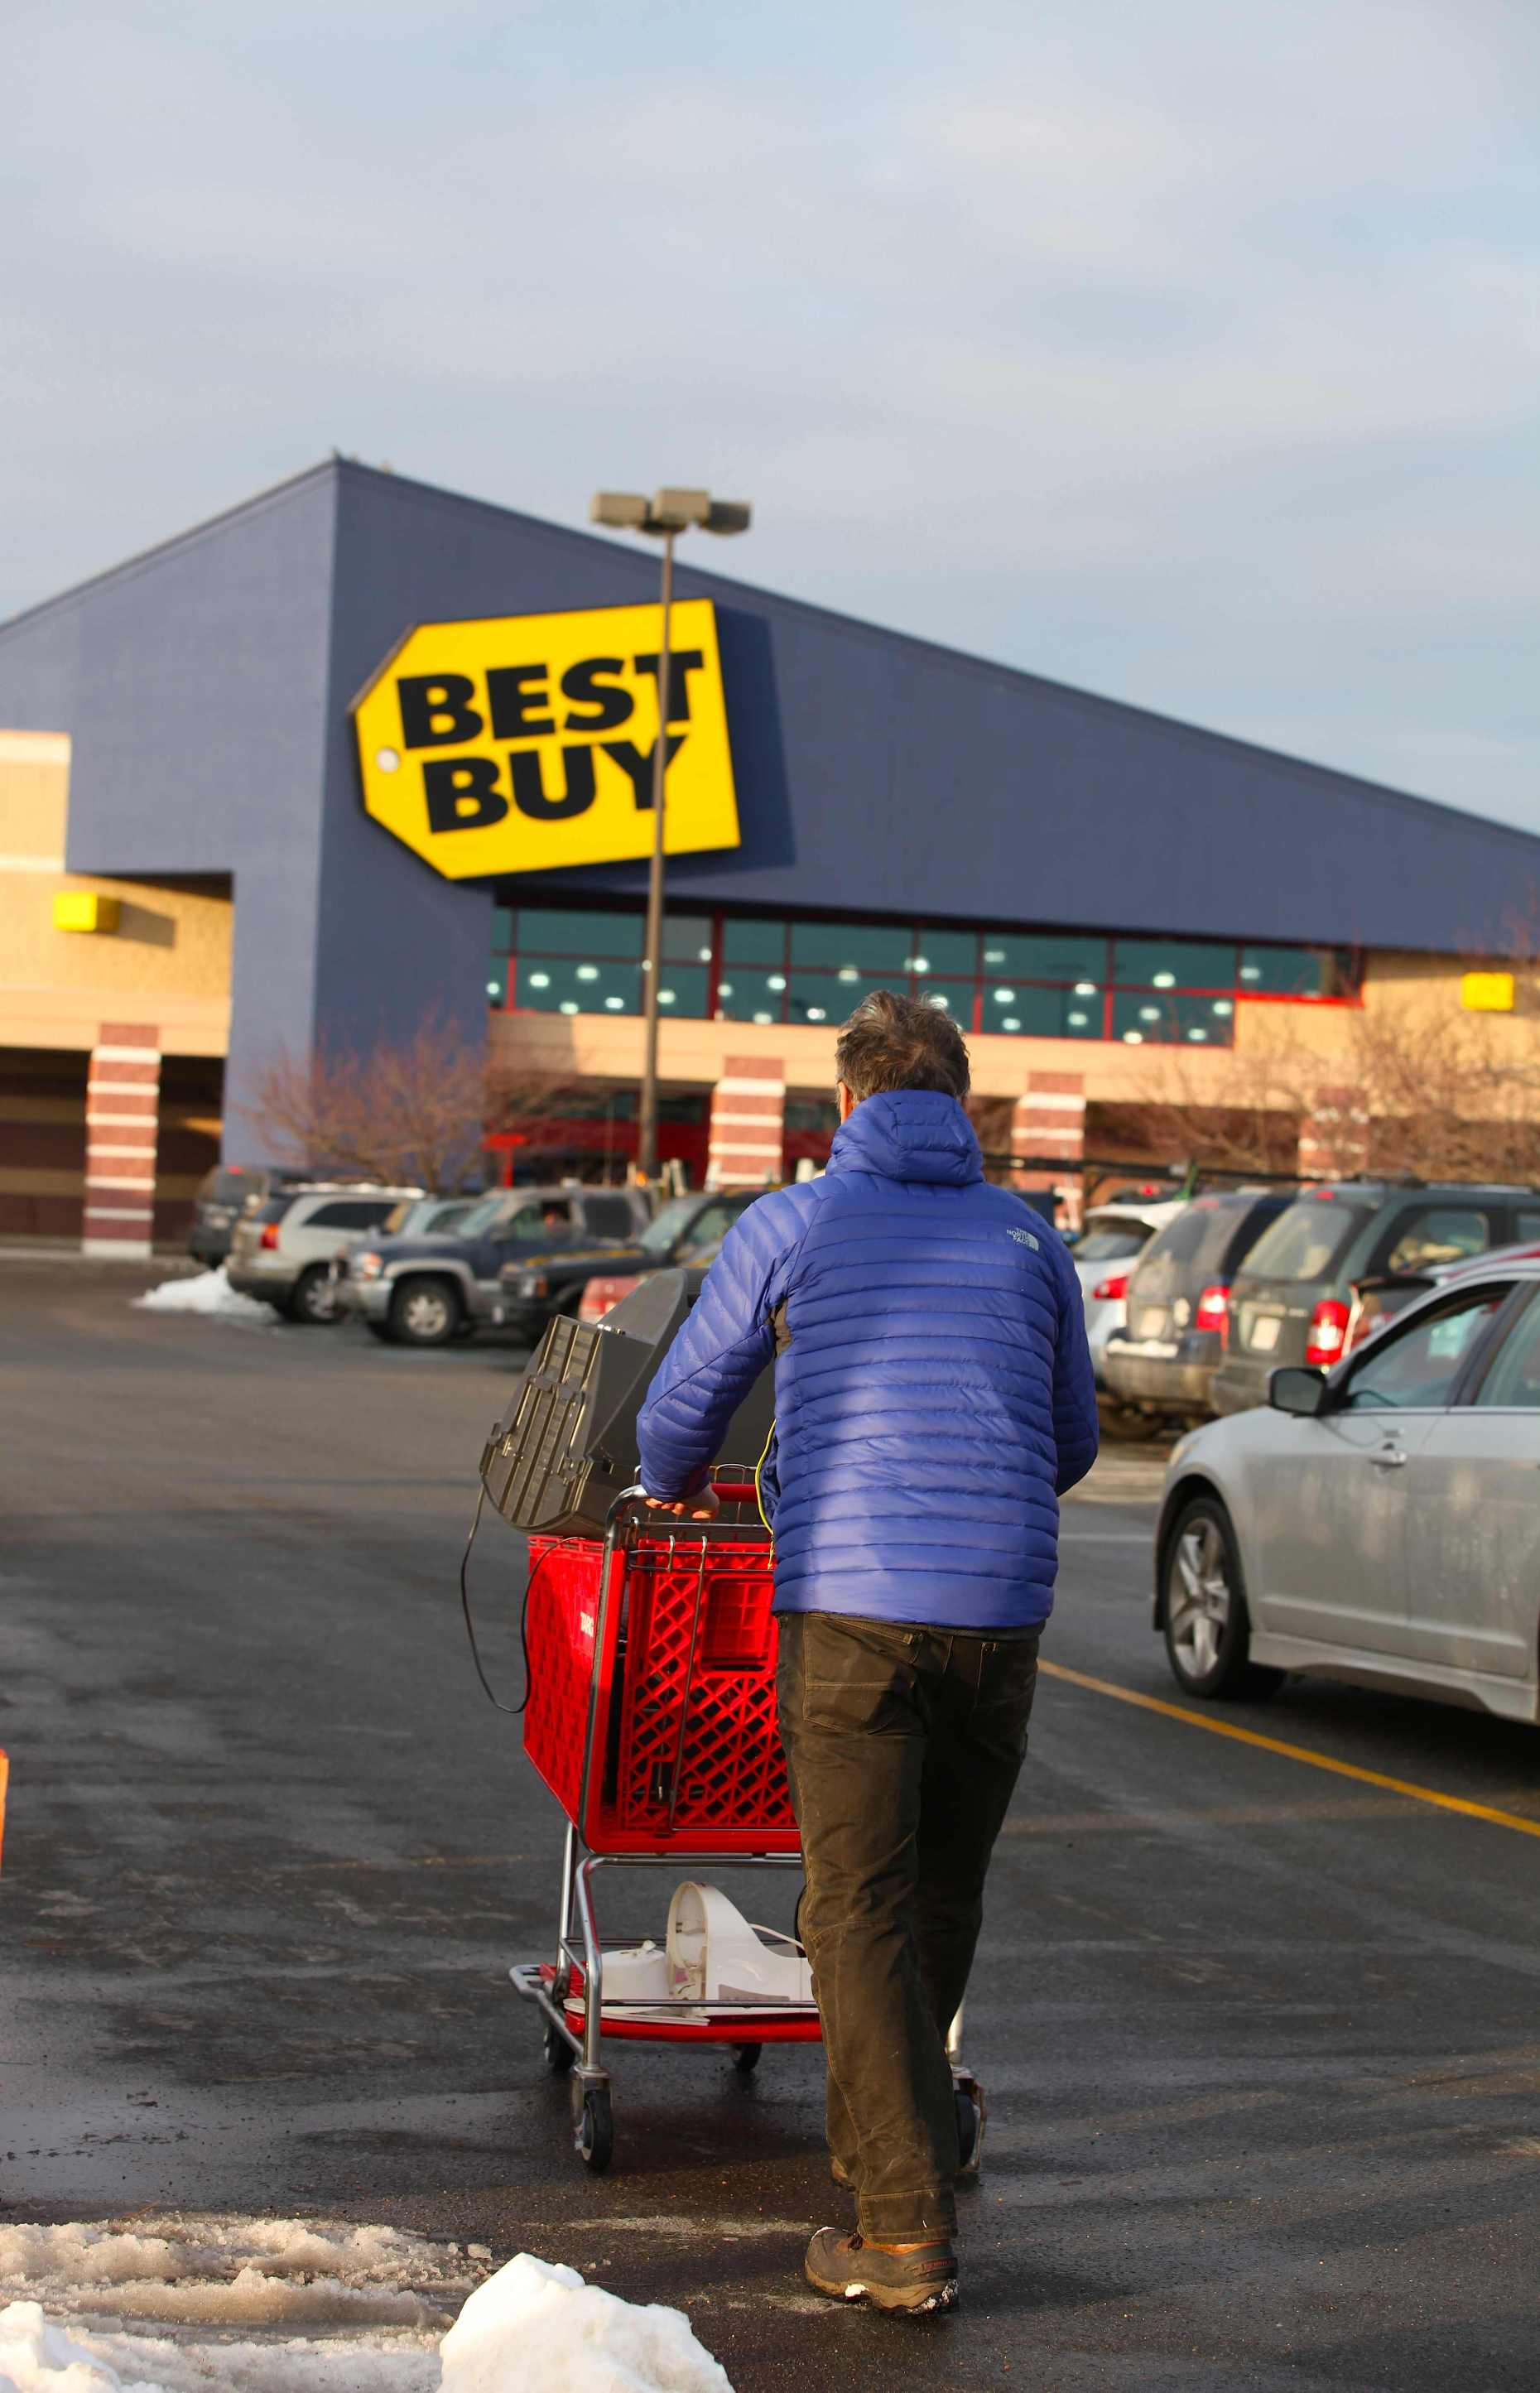 You Can Recycle 3 Electronic Items Per Visit to Best Buy